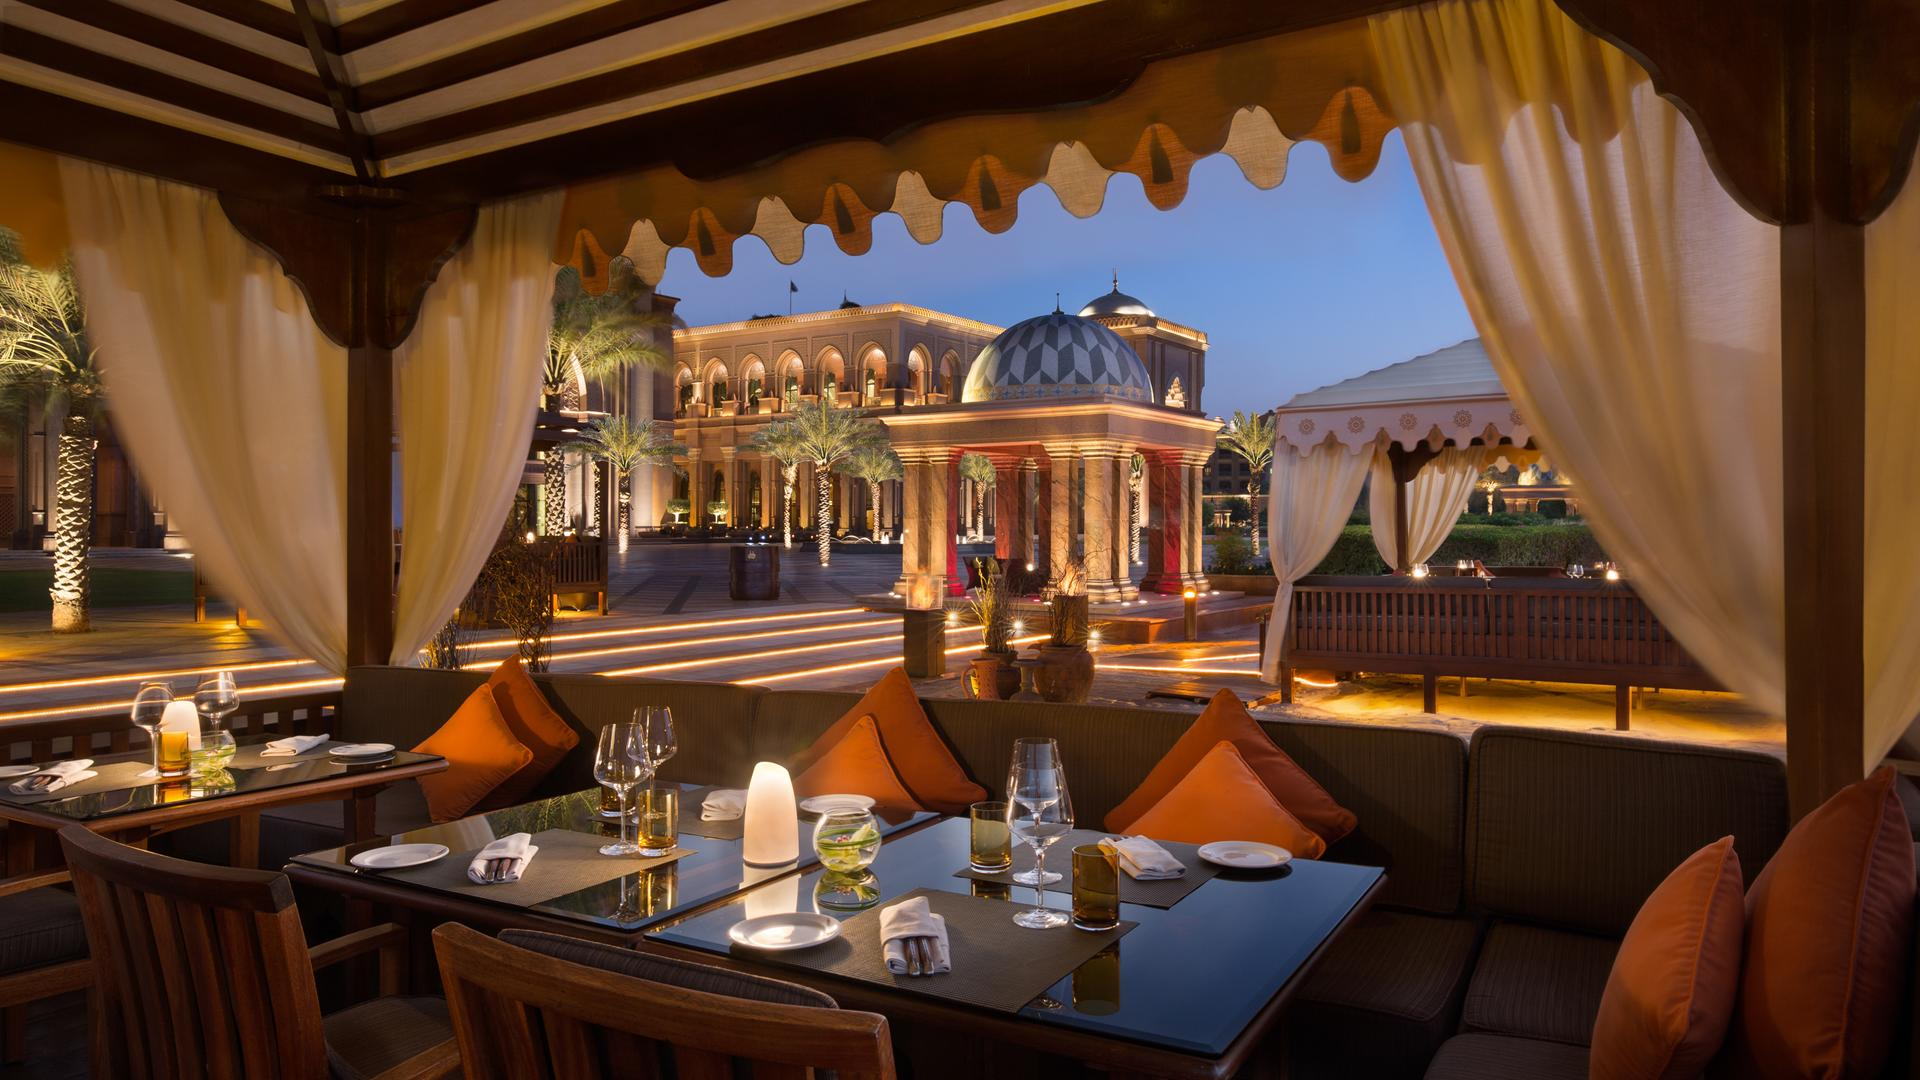 Top 7 Luxurious Hotels Emirates Palace